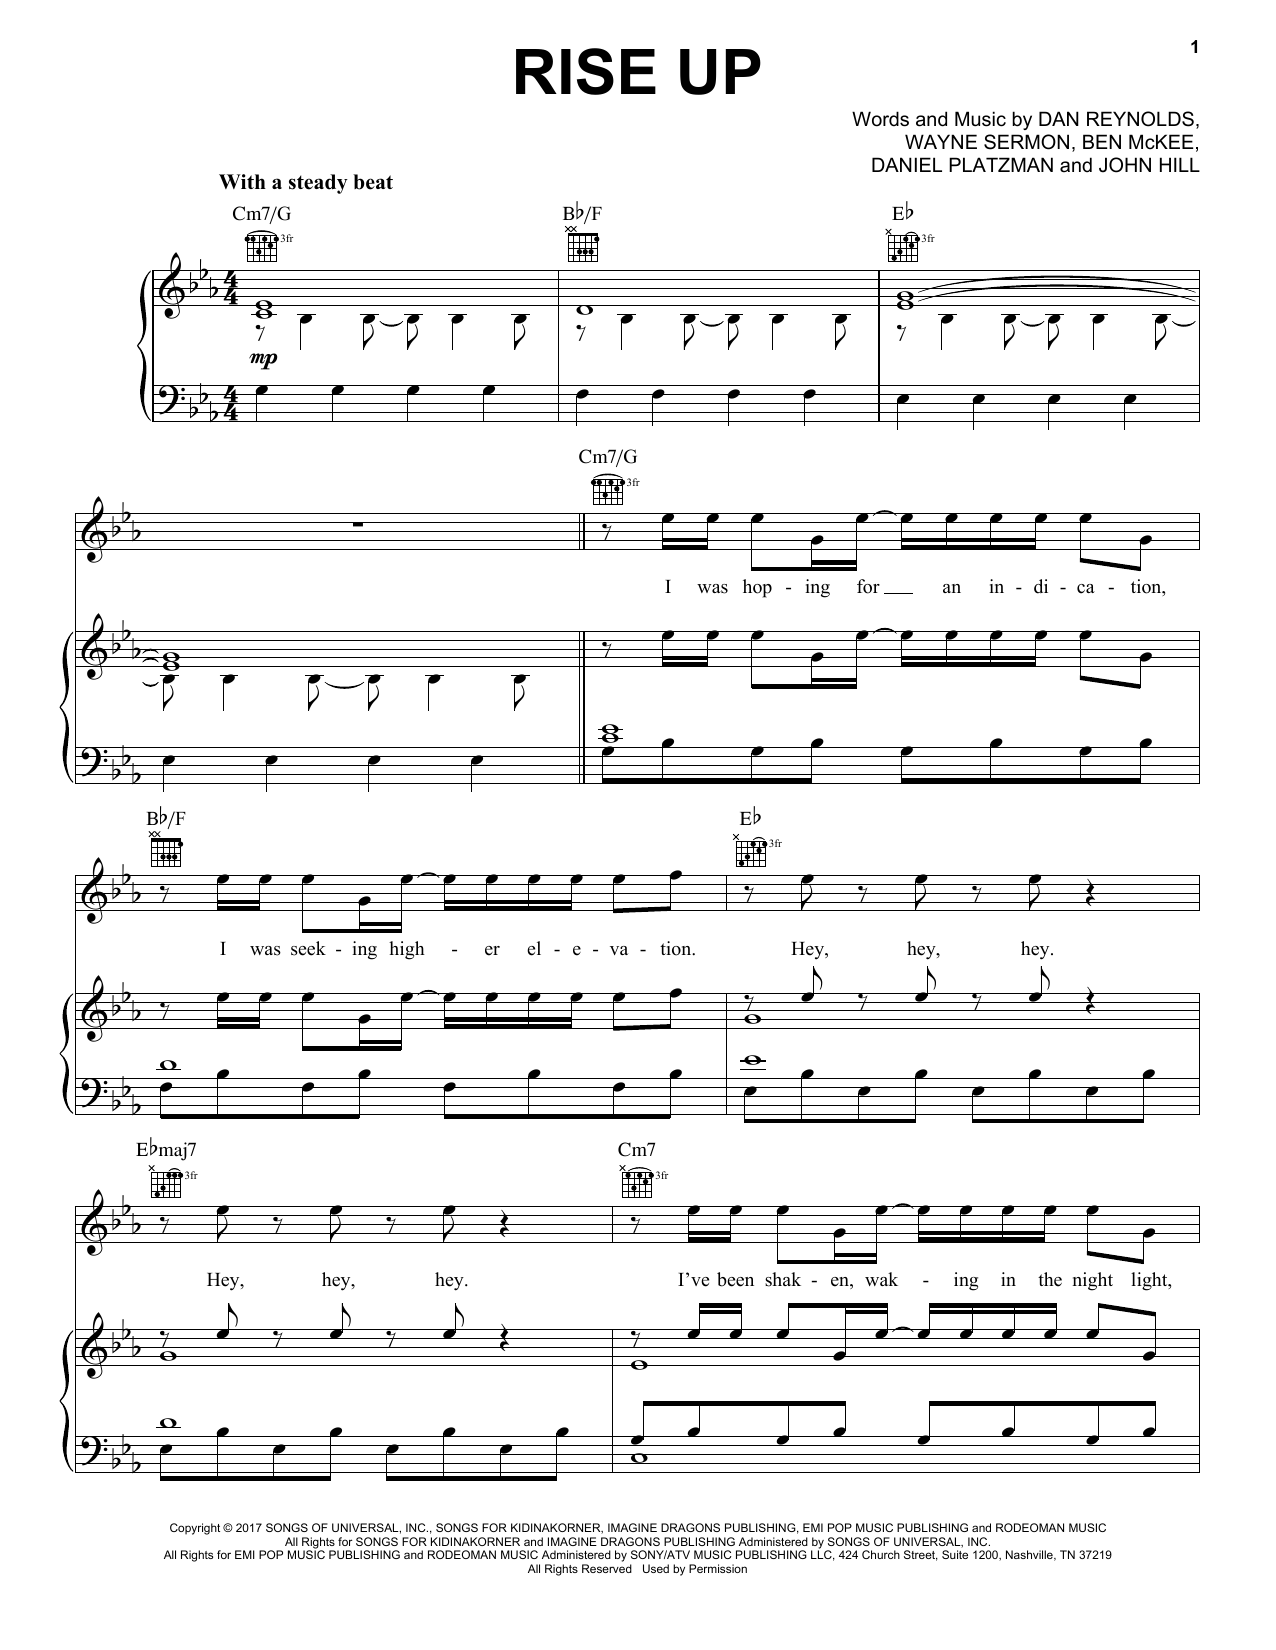 Imagine Dragons Rise Up sheet music notes and chords. Download Printable PDF.